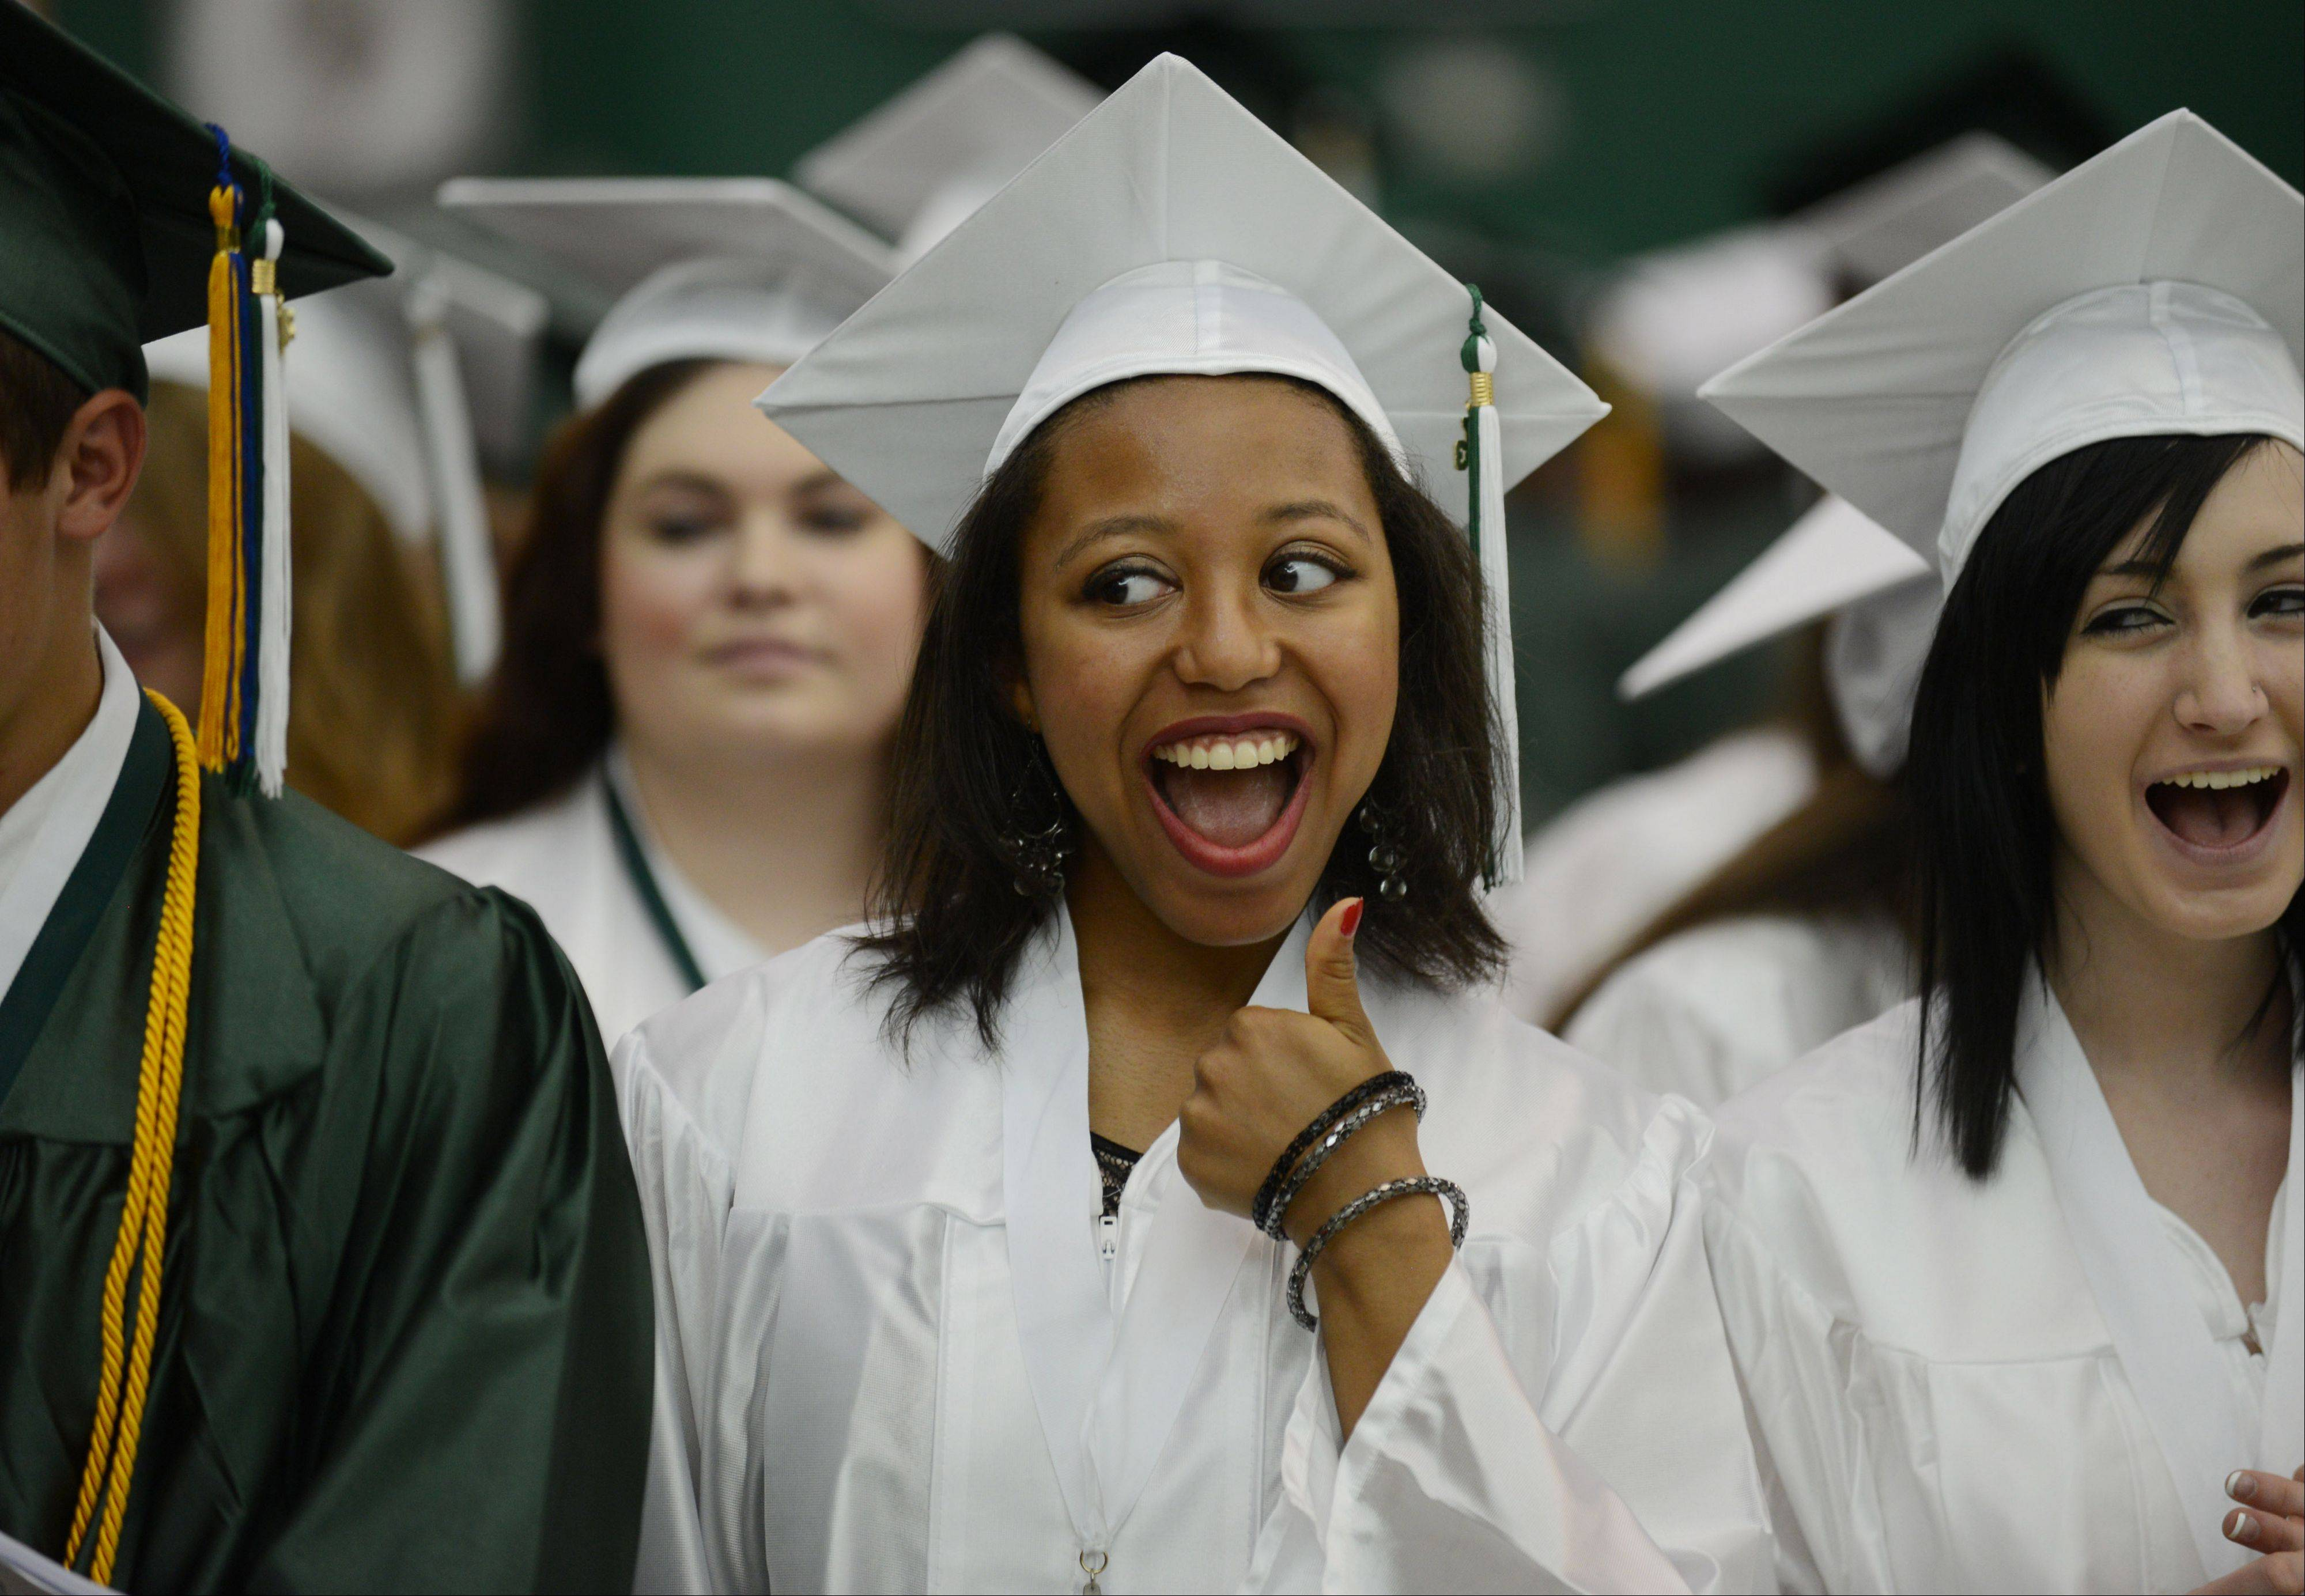 Grayslake Central High School student Miranda Adams gives her mom thumbs up during Sunday's graduation ceremony at the school.